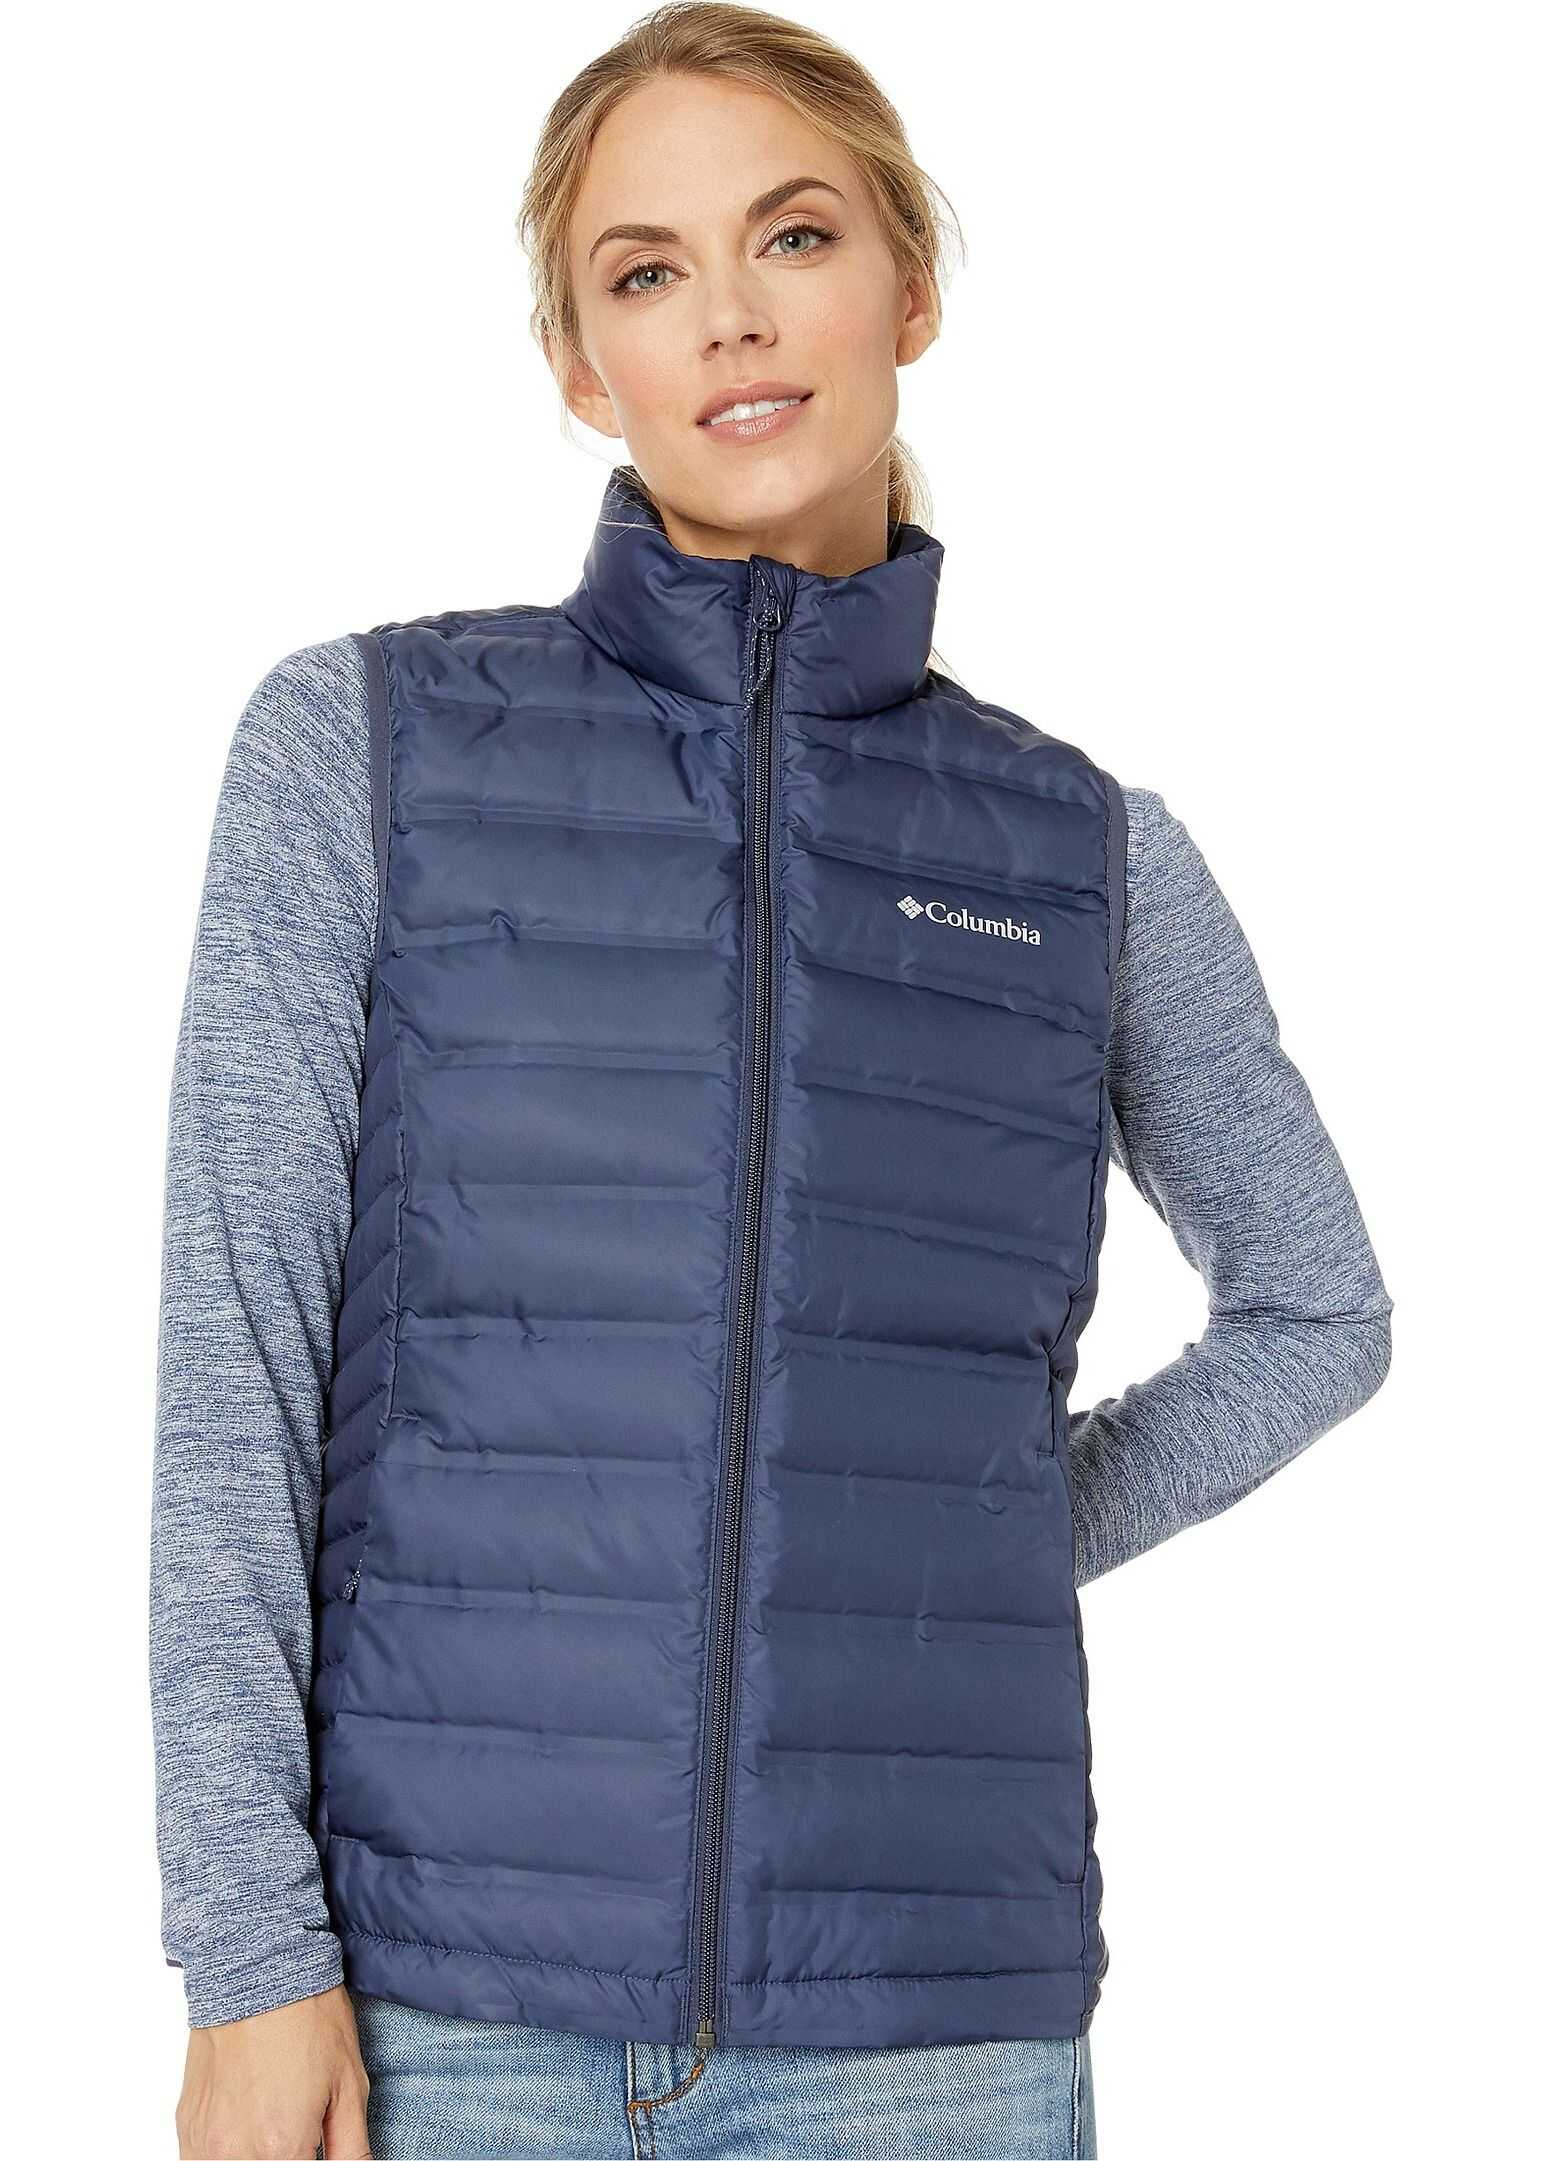 Columbia Lake 22 Vest Nocturnal